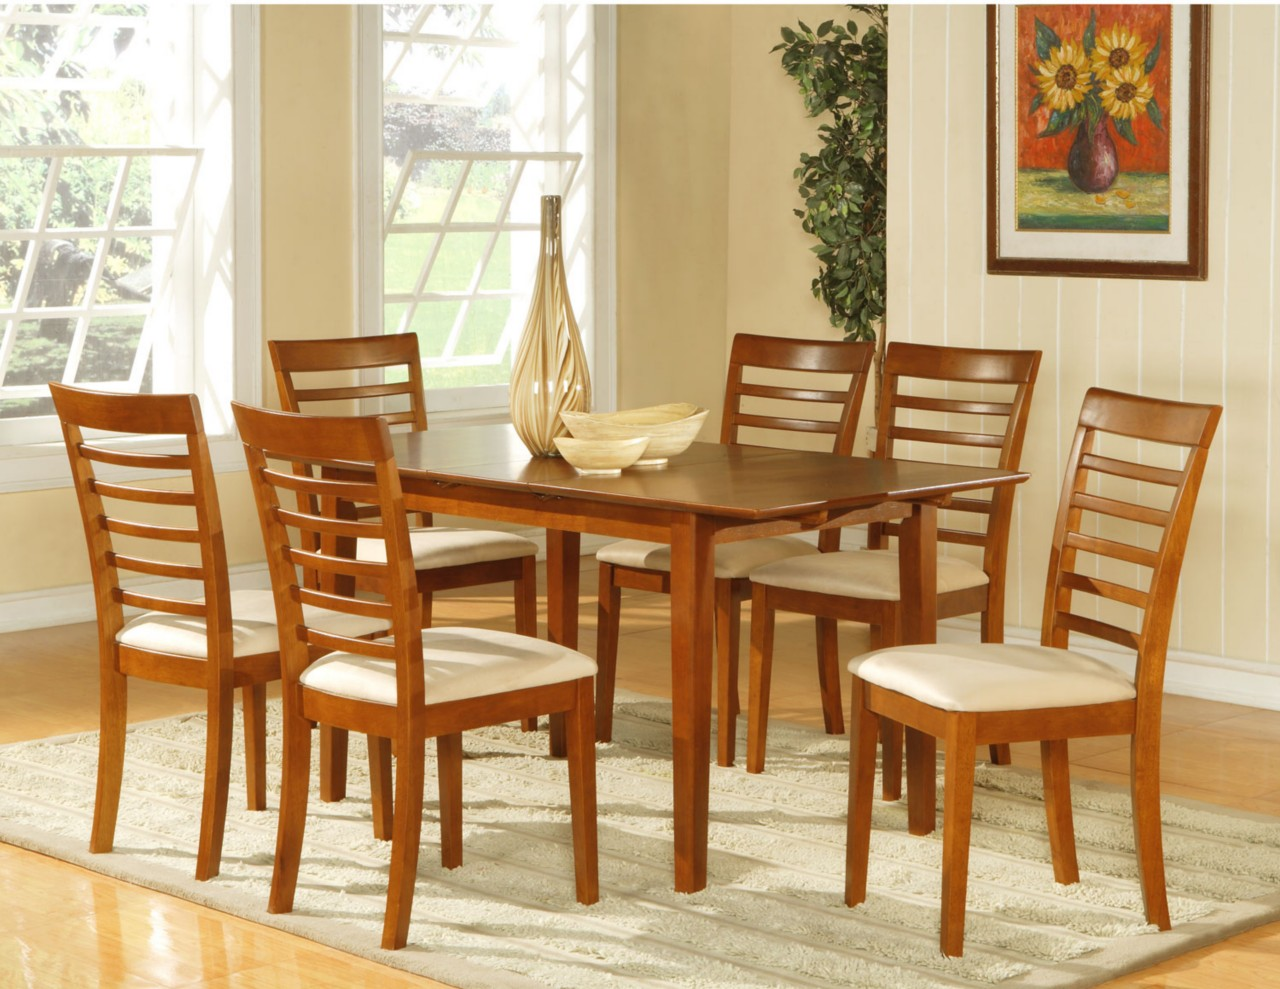 7pc dining room dinette set table and 6 chairs brown ebay for Dinette set with bench